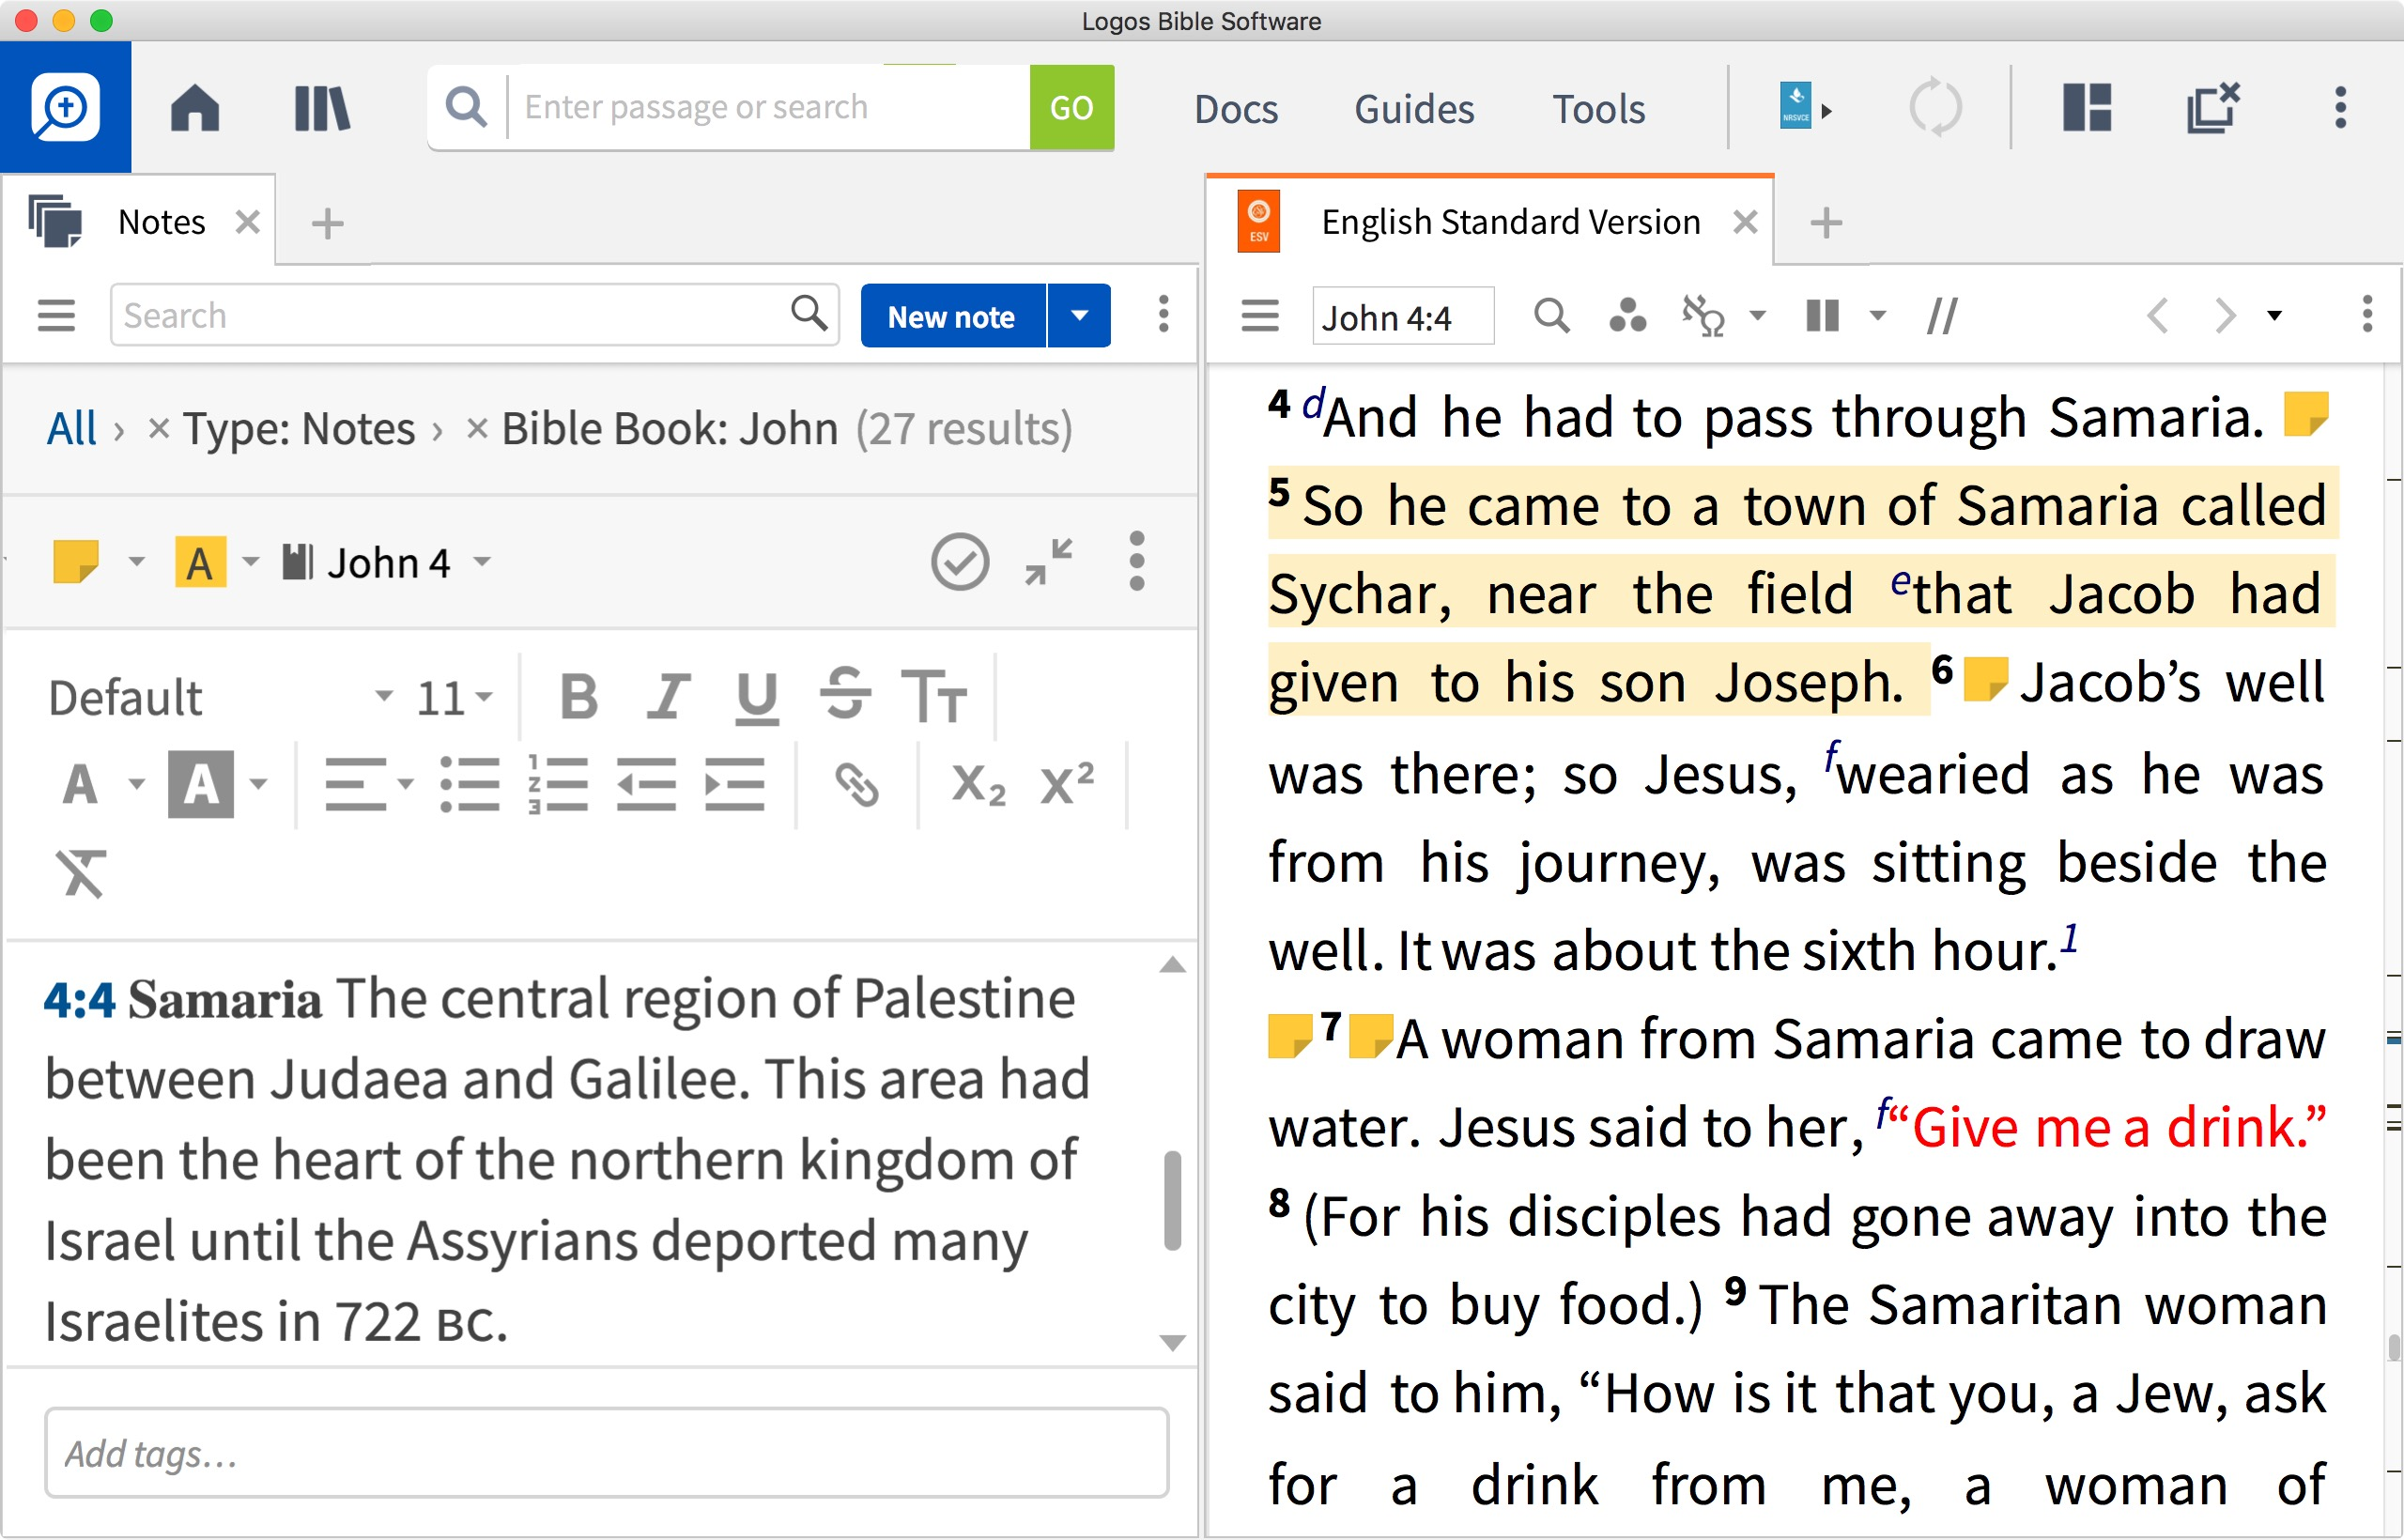 Introducing Logos 8 Logos Bible Software Logos Bible Software